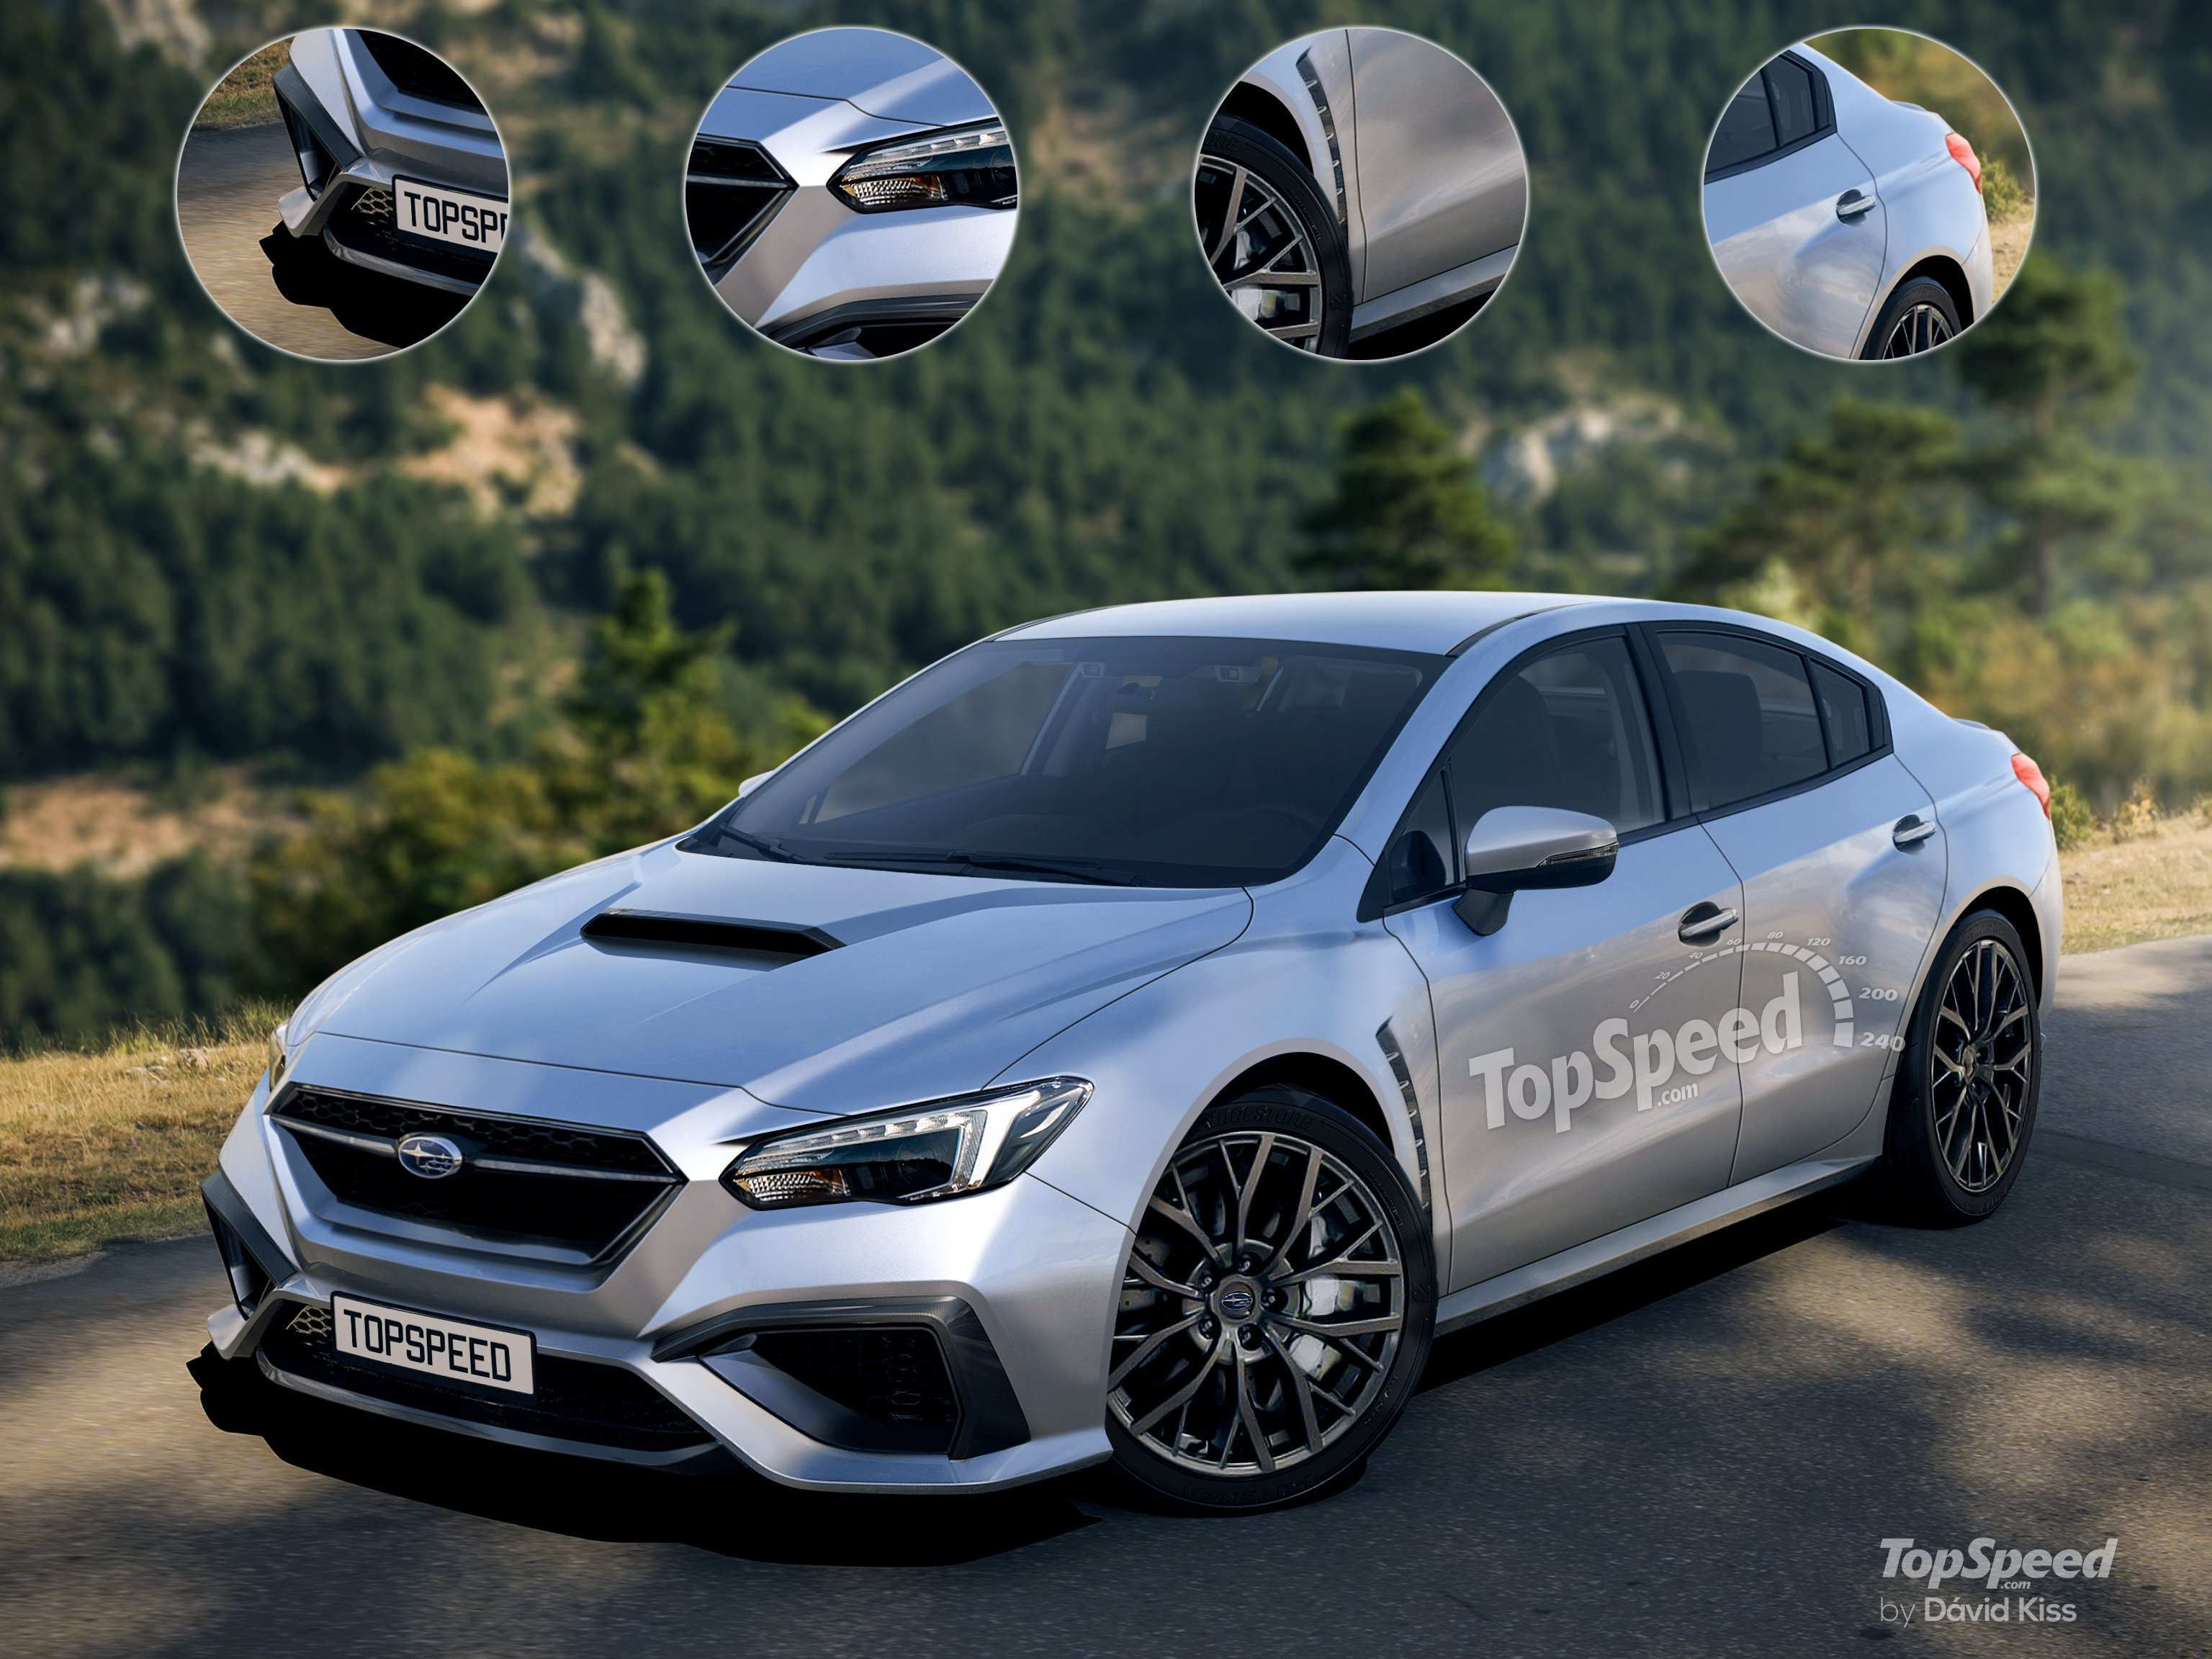 12 Concept of 2020 Subaru Wrx Hatchback New Review for 2020 Subaru Wrx Hatchback